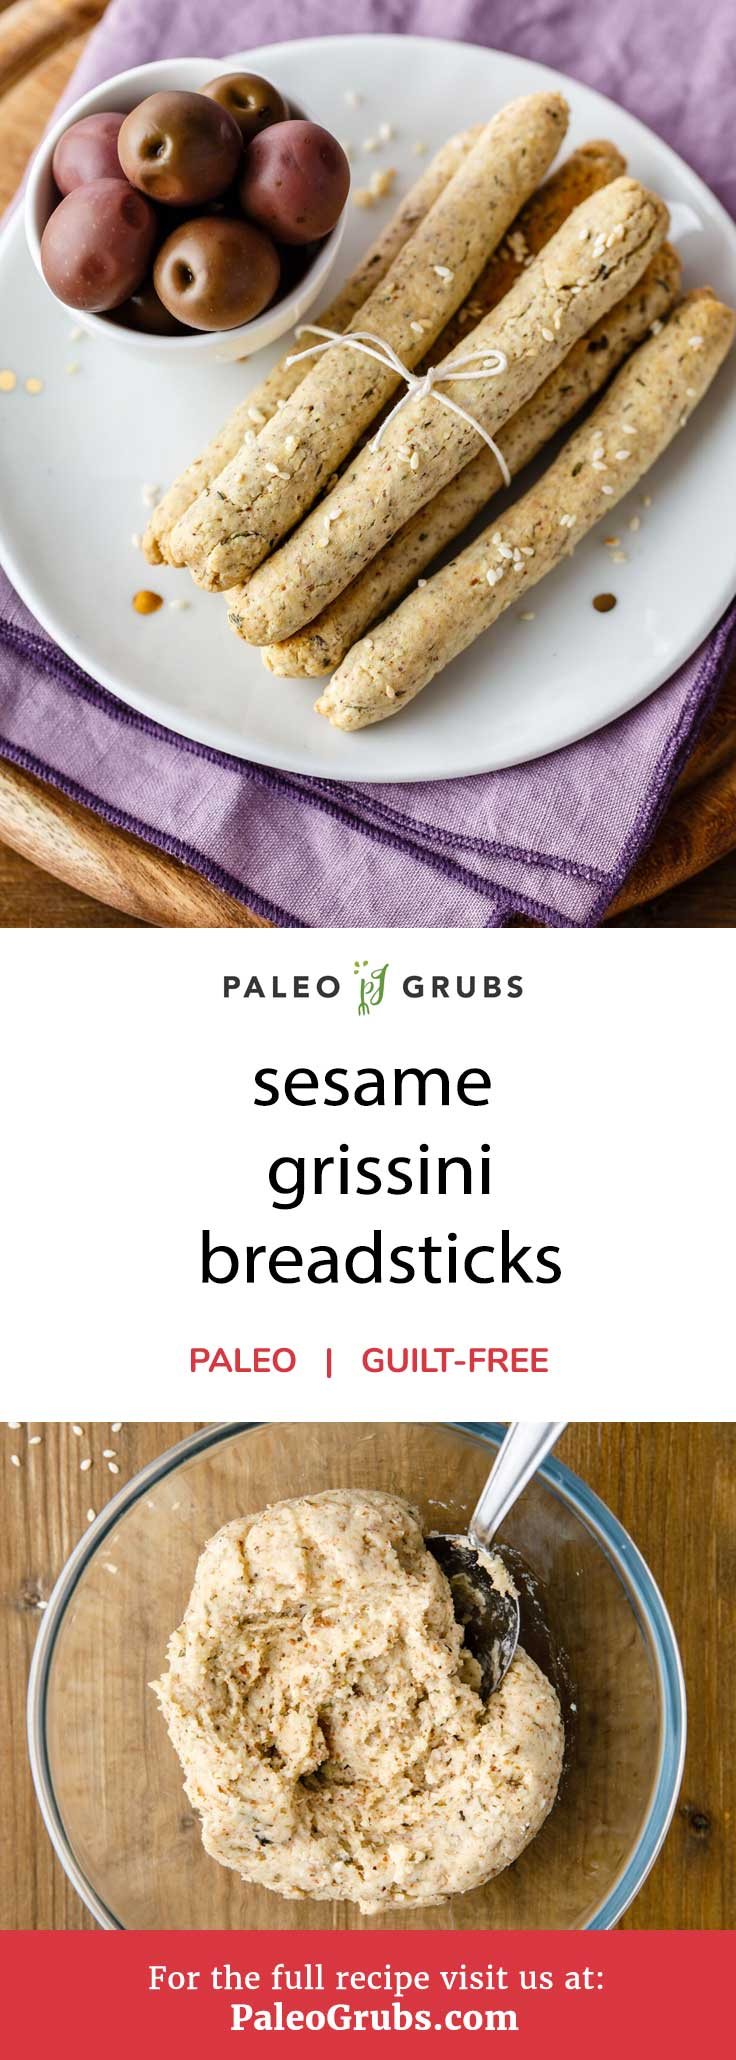 Coming up with delicious dinner appetizers that everybody can enjoy no matter what type of diet they are following doesn't have to be hard. This paleo style sesame grissini recipe is easy to make and makes for the perfect appetizer to include with your meals.